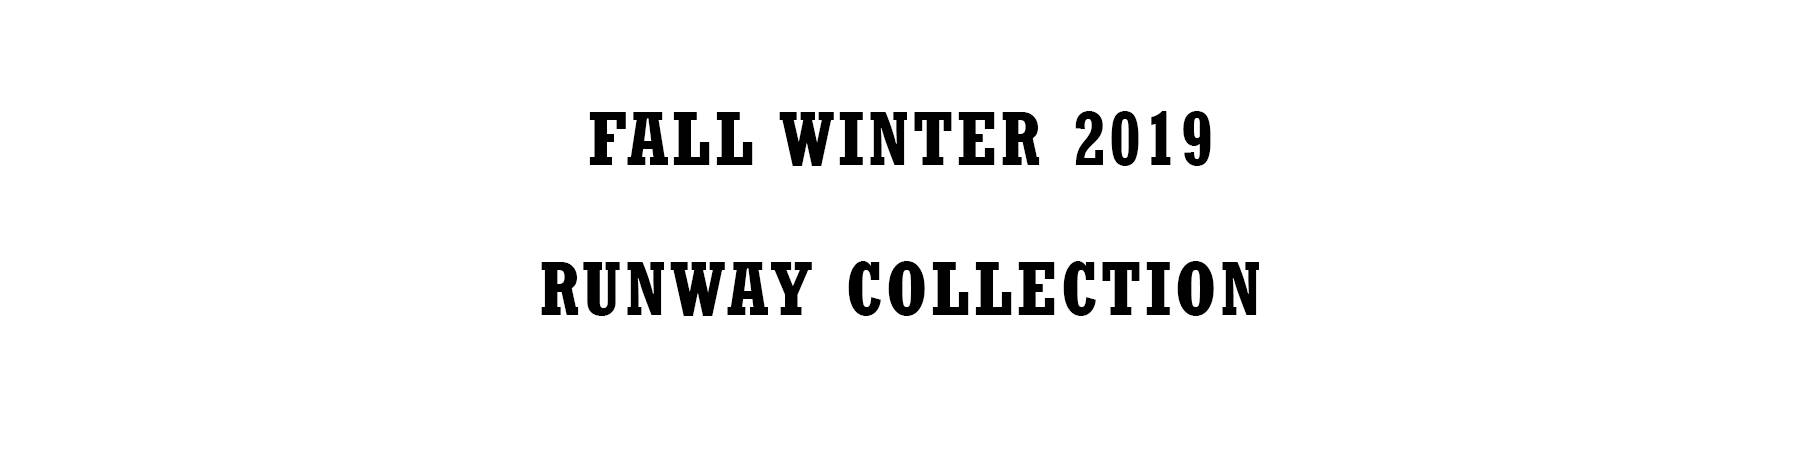 Fall Winter 2019 Runway Collection Page